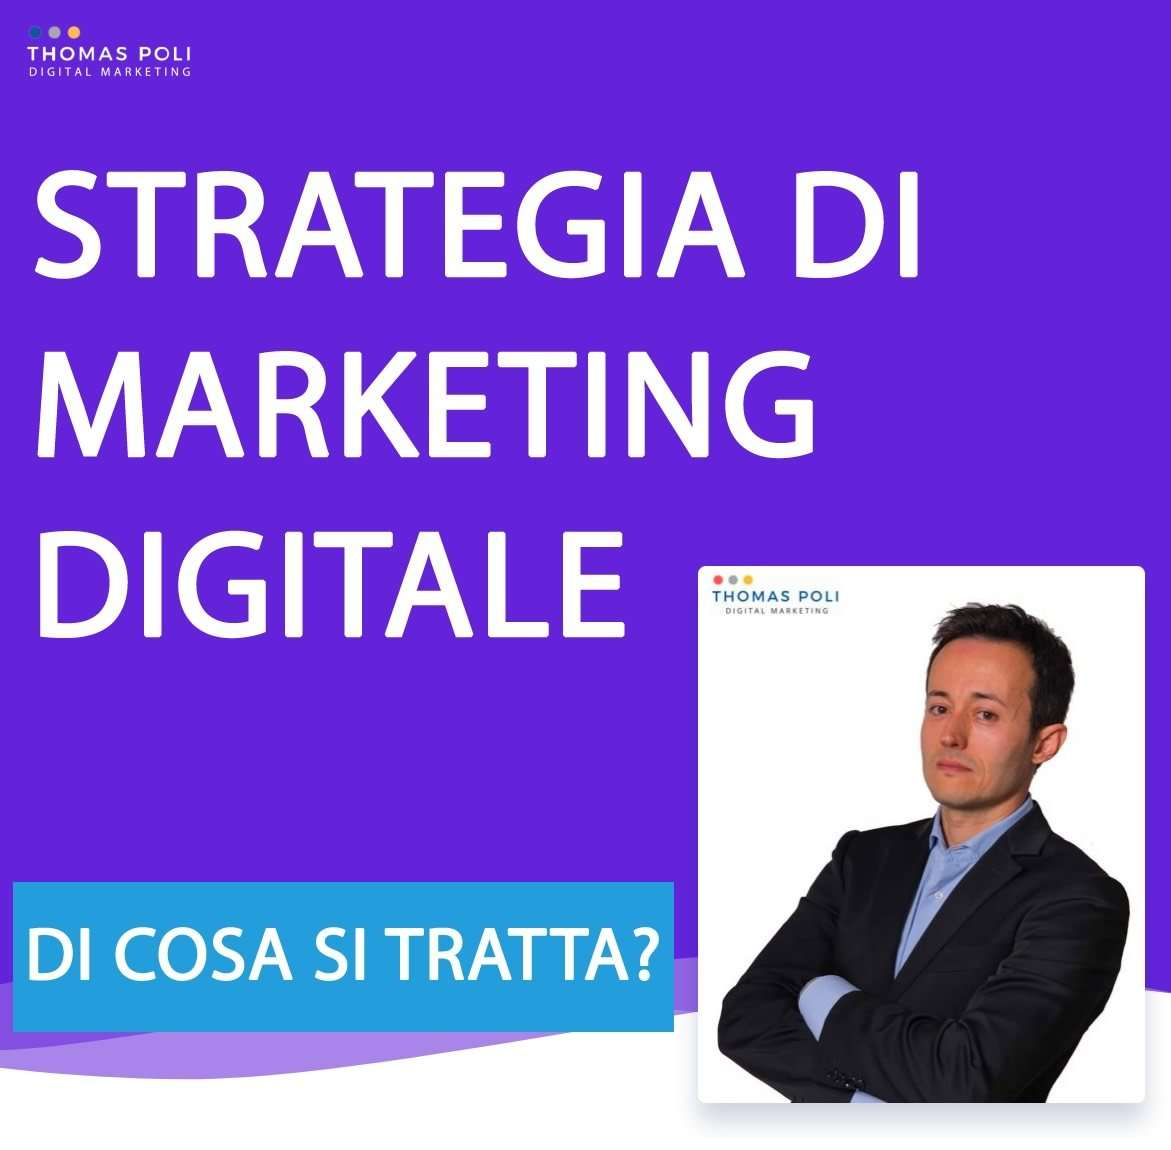 Strategia Digital Marketing - Thomas Poli